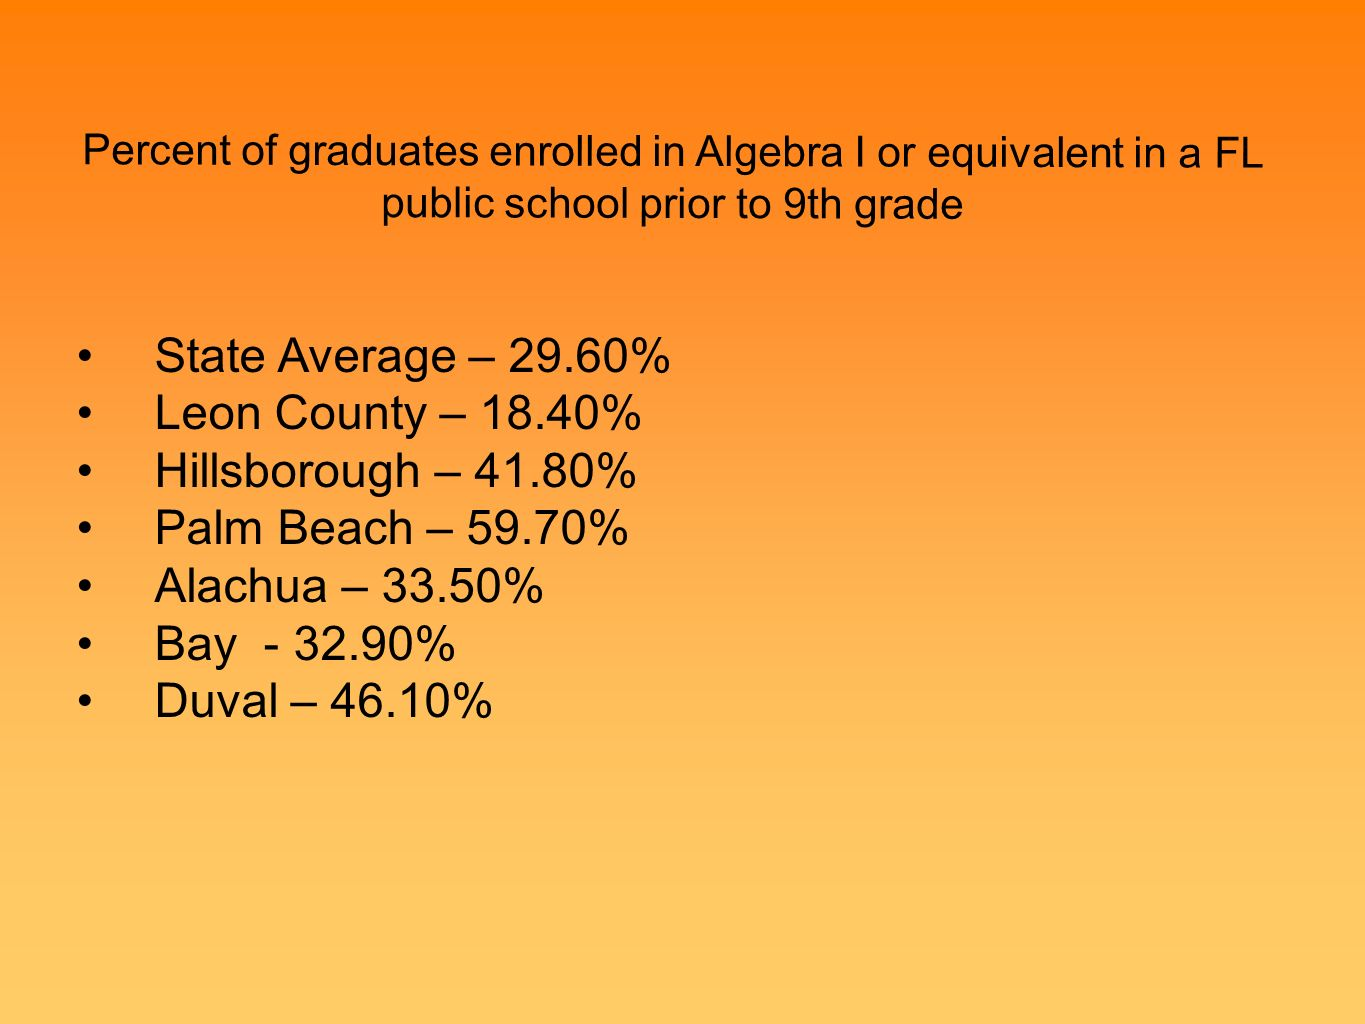 Percent of graduates enrolled in Algebra I or equivalent in a FL public school prior to 9th grade Low DOK State Average – 29.60% Leon County – 18.40% Hillsborough – 41.80% Palm Beach – 59.70% Alachua – 33.50% Bay - 32.90% Duval – 46.10%